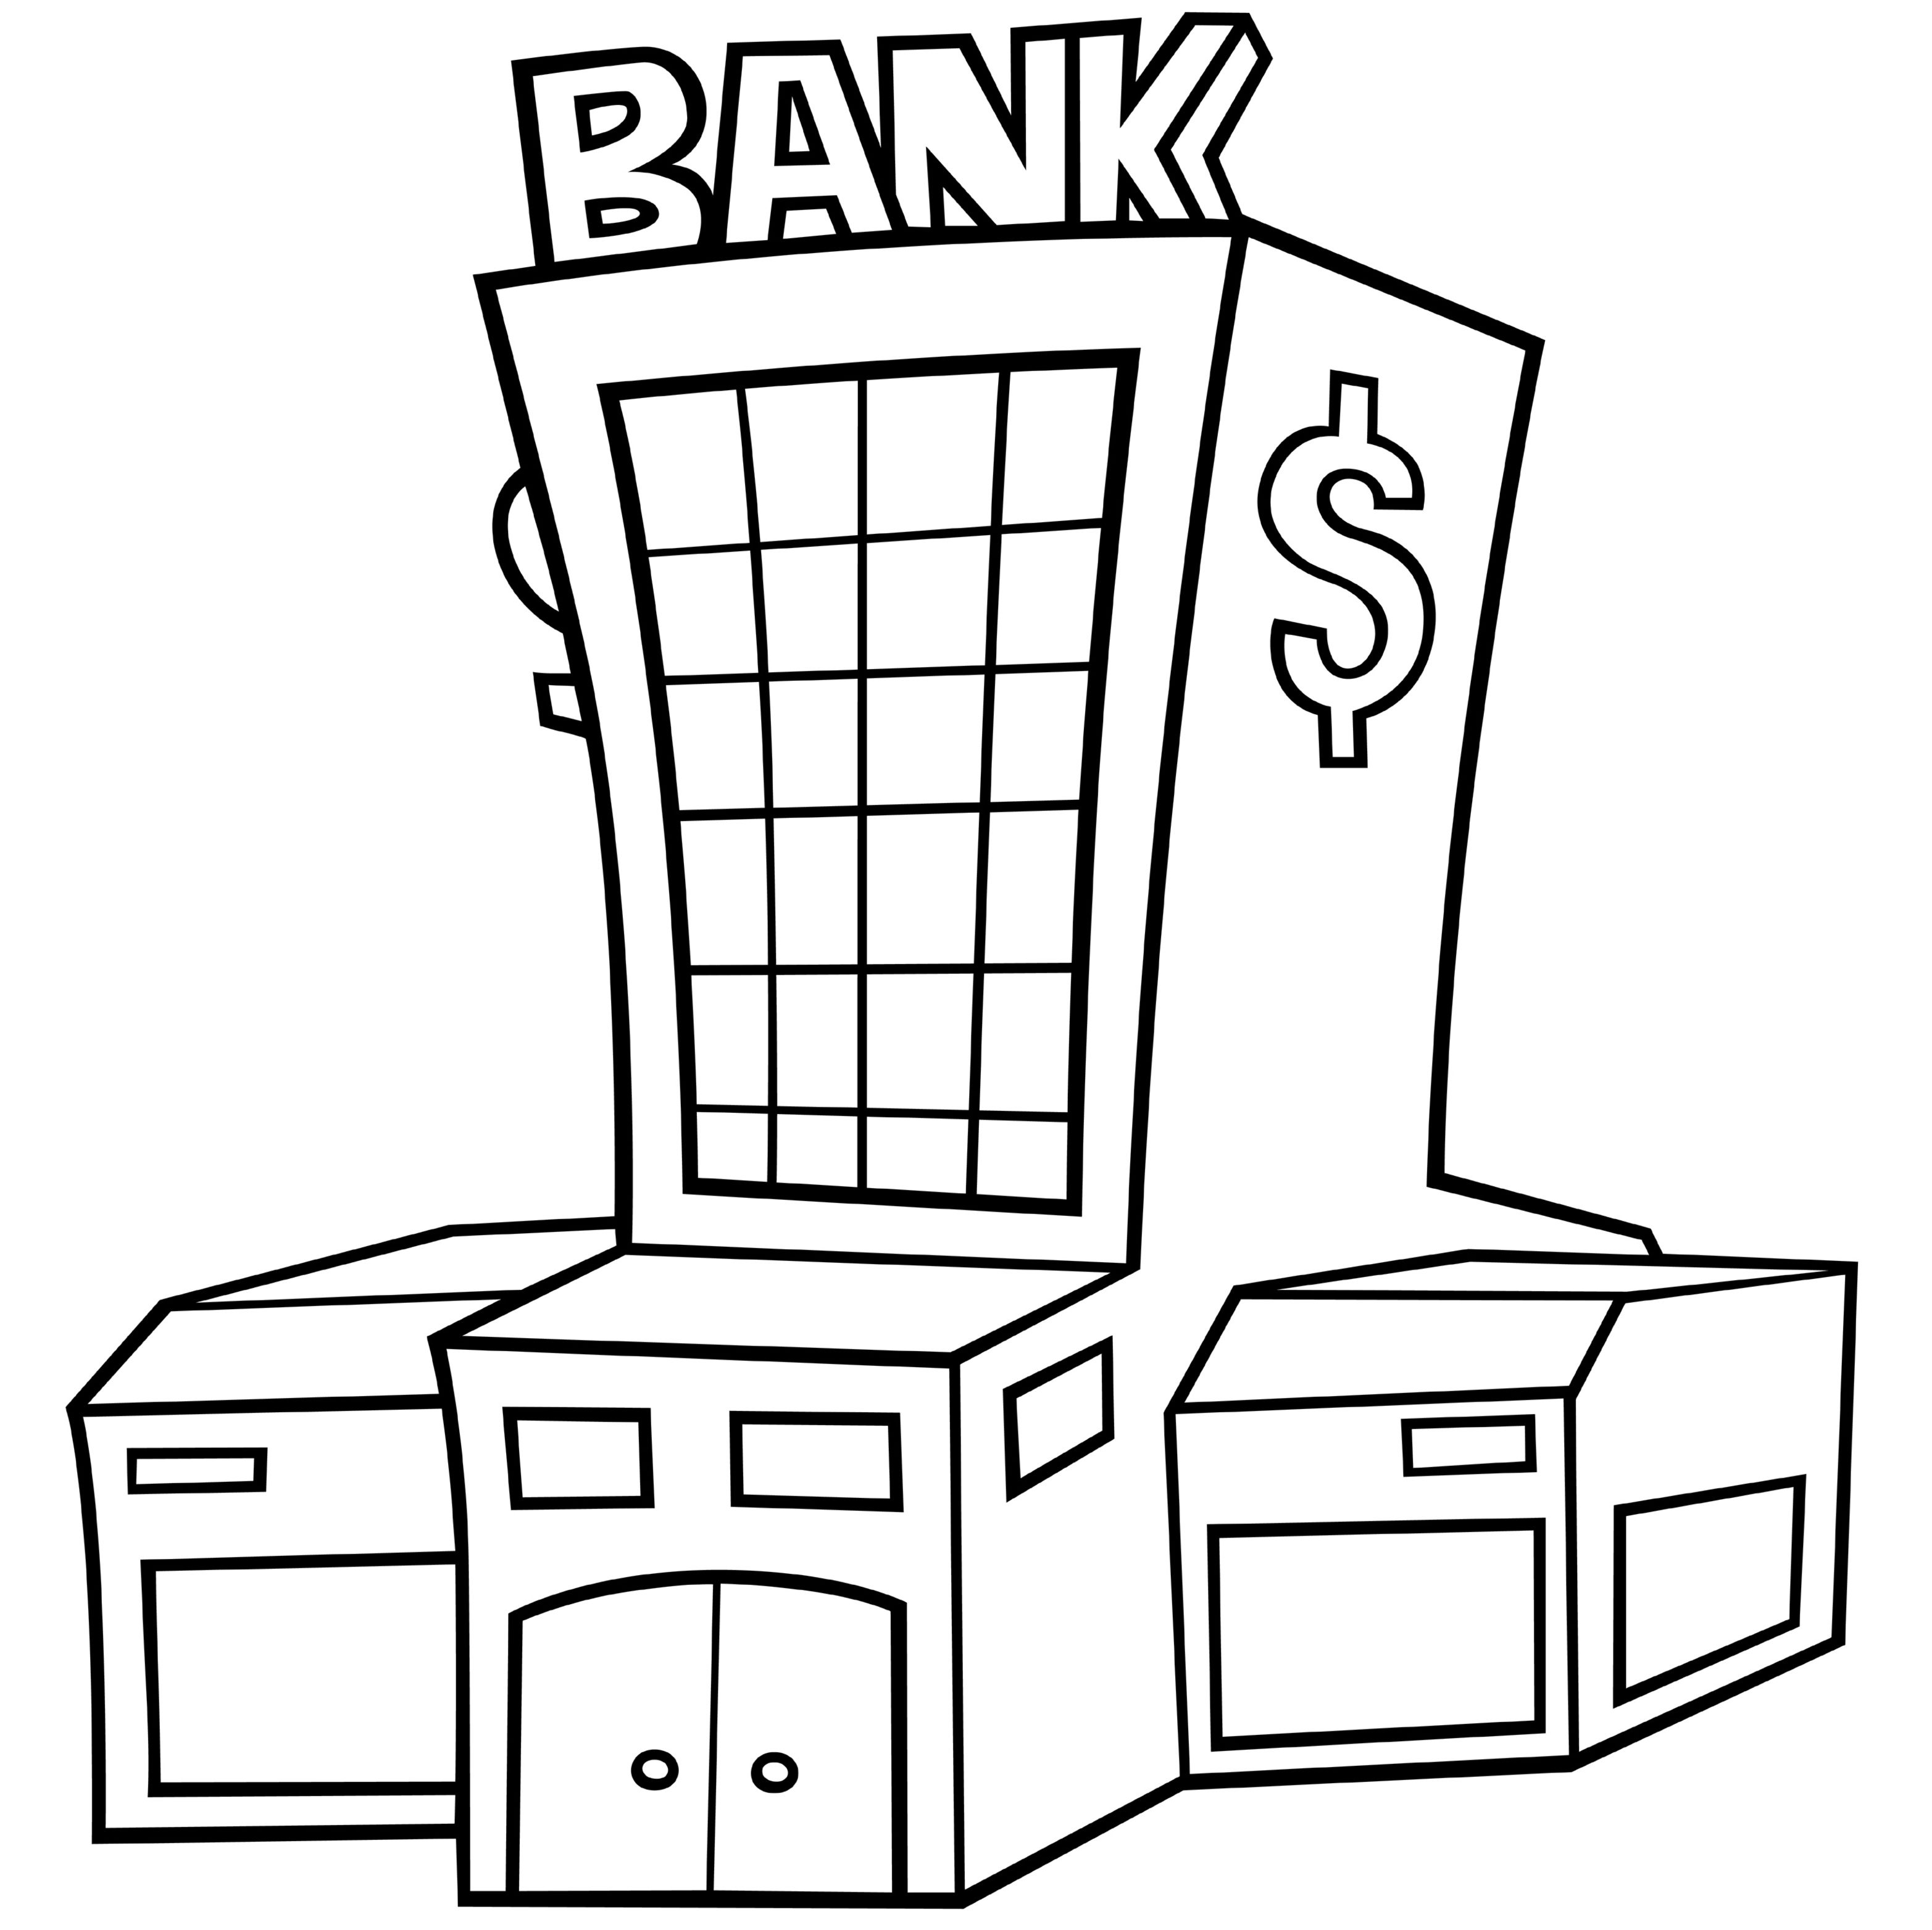 What Opportunities Are Available Through Business Banking Services